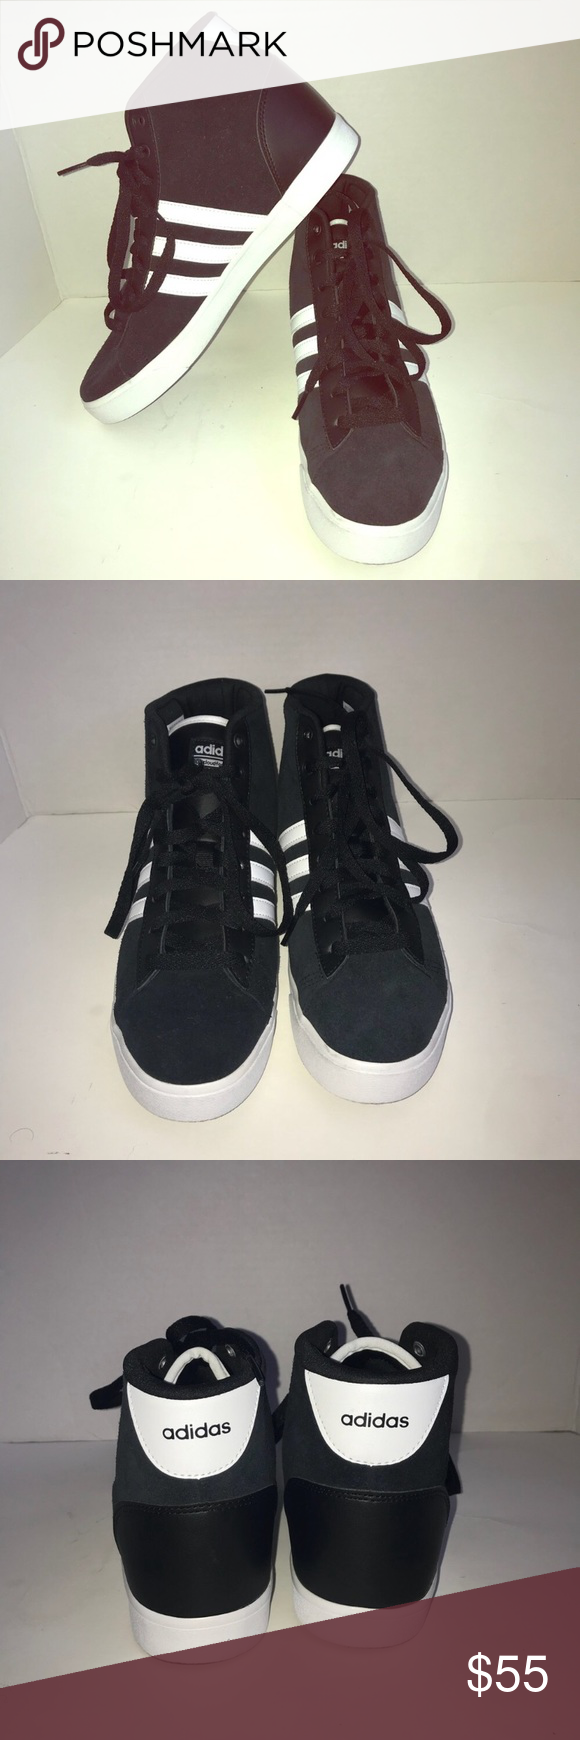 1559aedb0936d0 Adidas Neo high top sneakers  NWOT Adidas Neo cloud form black   white high